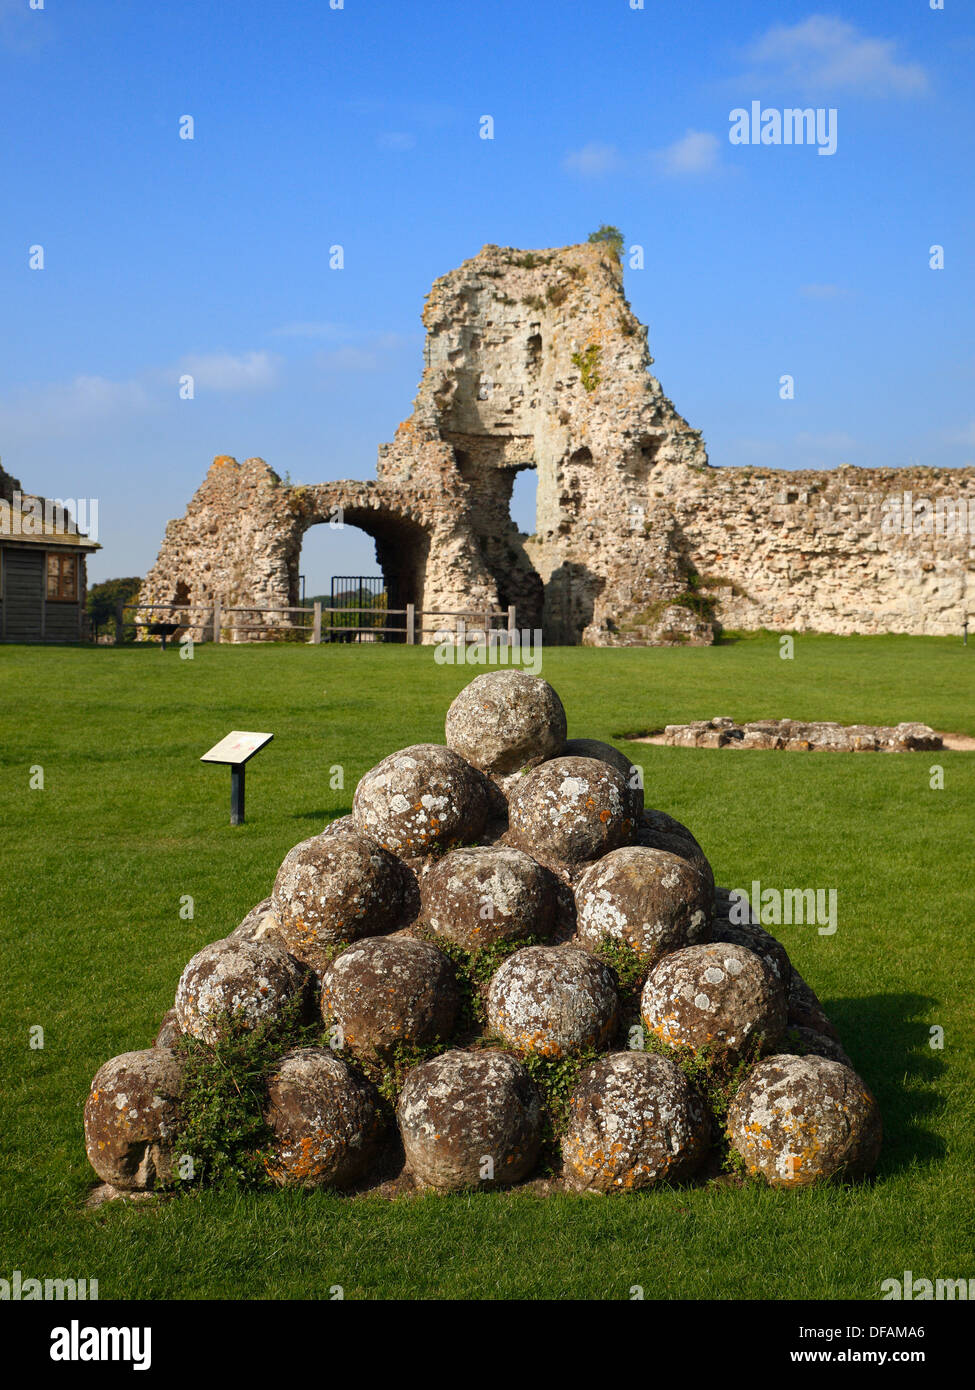 stone balls stock photos & stone balls stock images - alamy